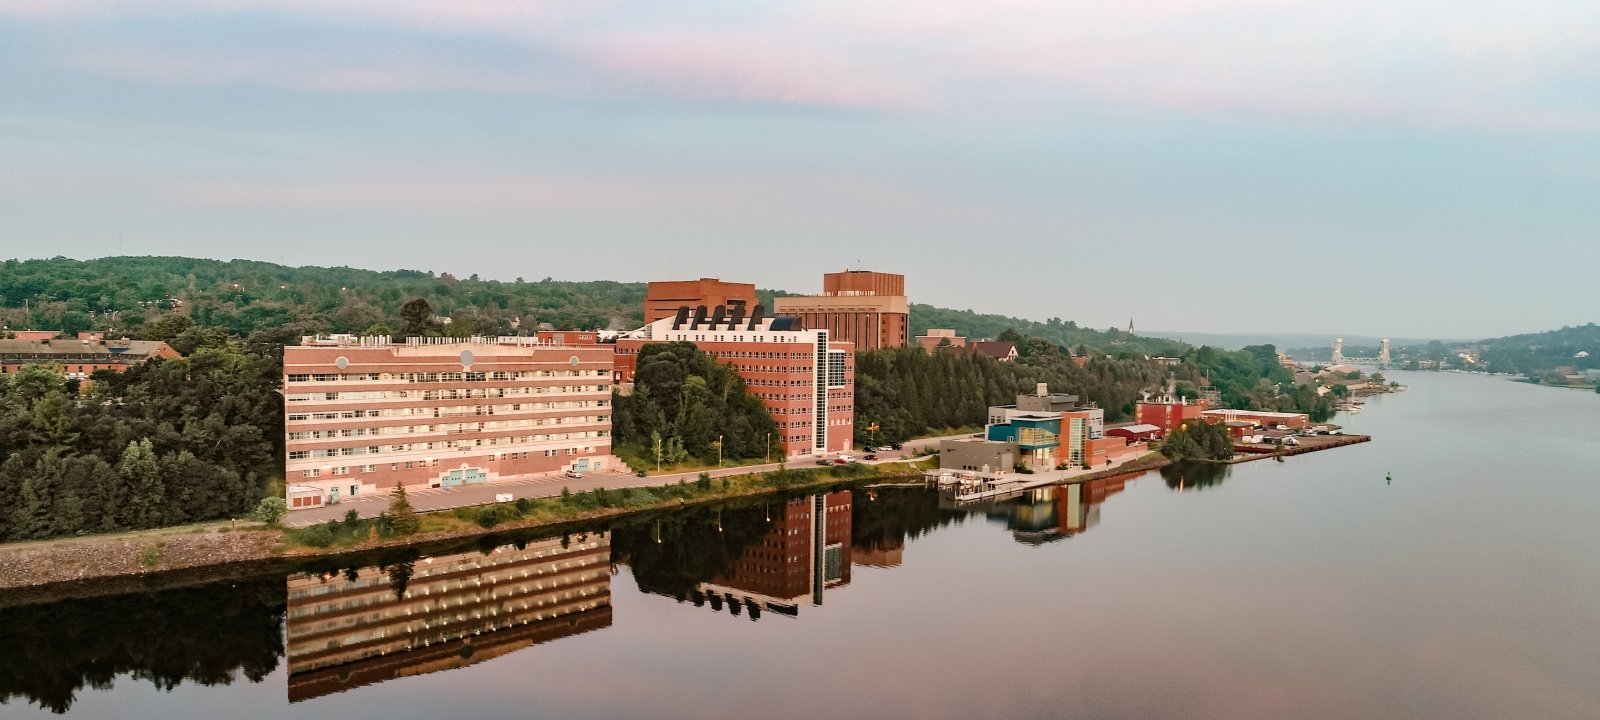 Michigan Tech campus drone view in morning from Keweenaw Waterway.